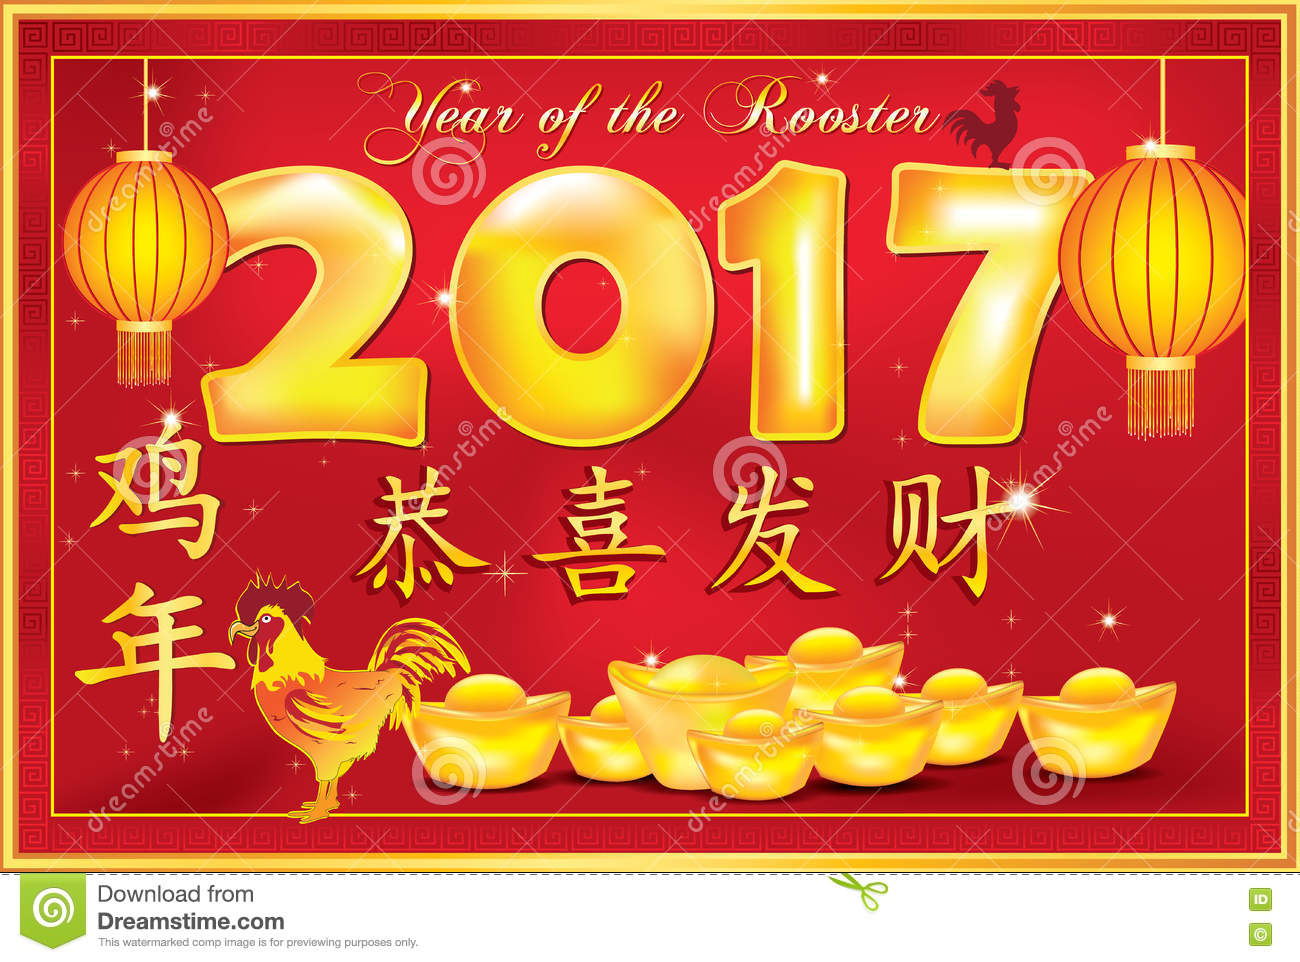 printable 2017 greeting card for the chinese new year of the rooster the image contains oriental gold nuggets gold ingots chinese paper lamps